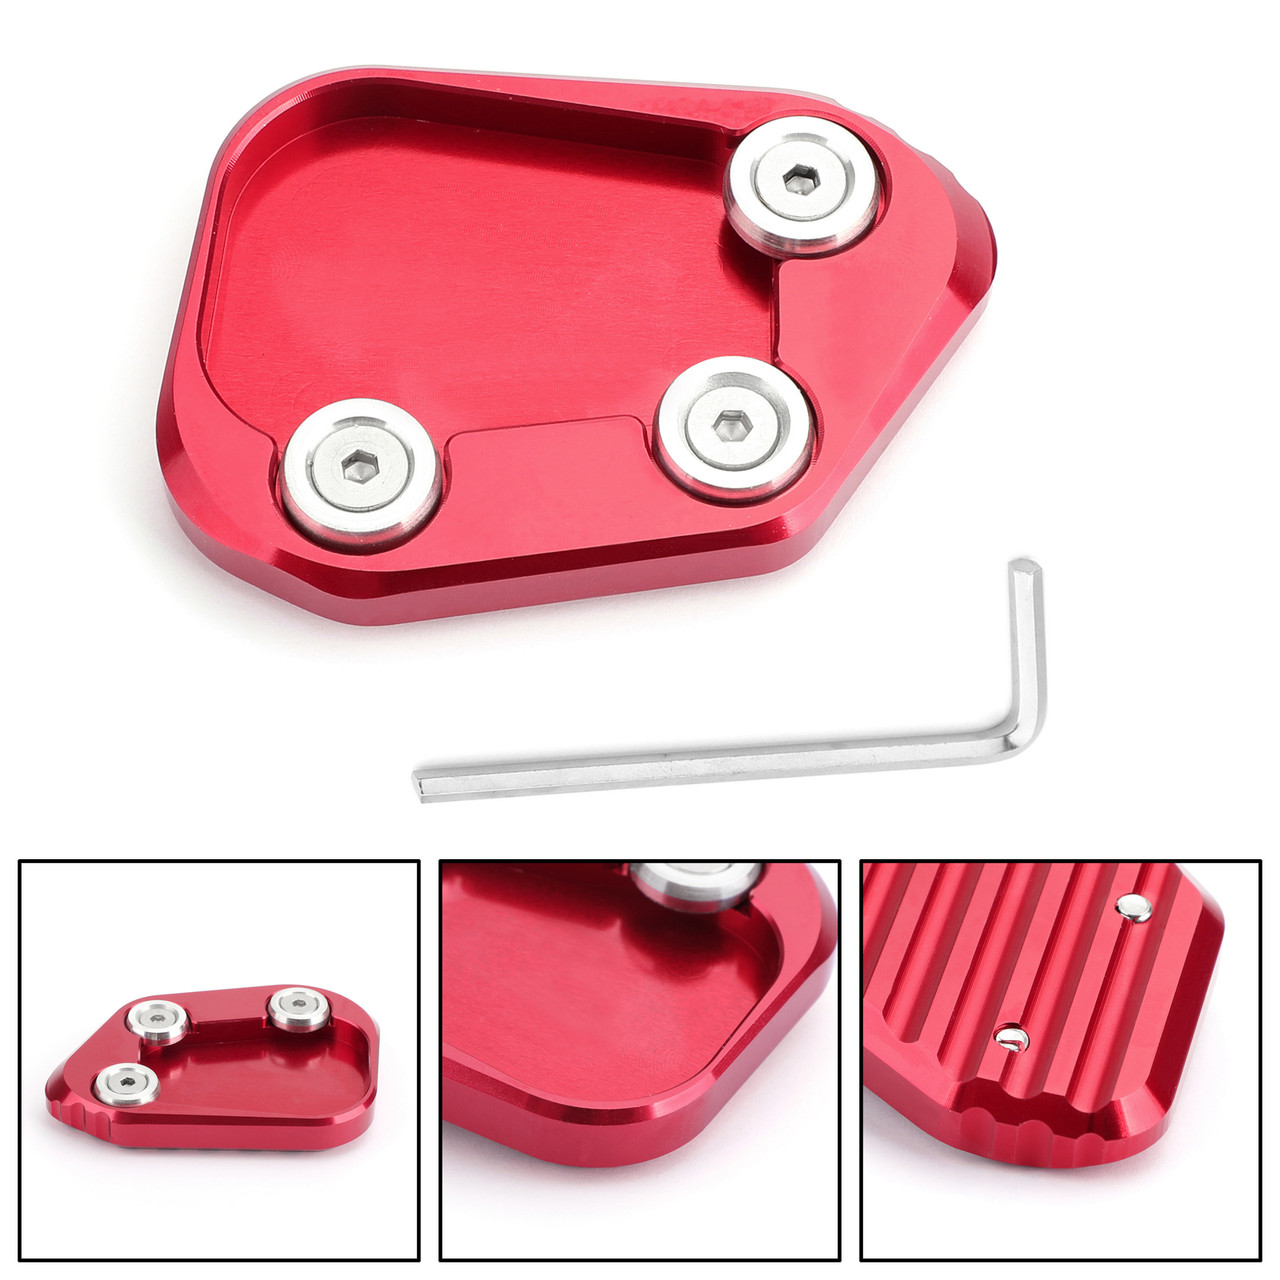 Kickstand Side Stand Extension Enlarger Pad For Honda CBR250RR 17-18 Red